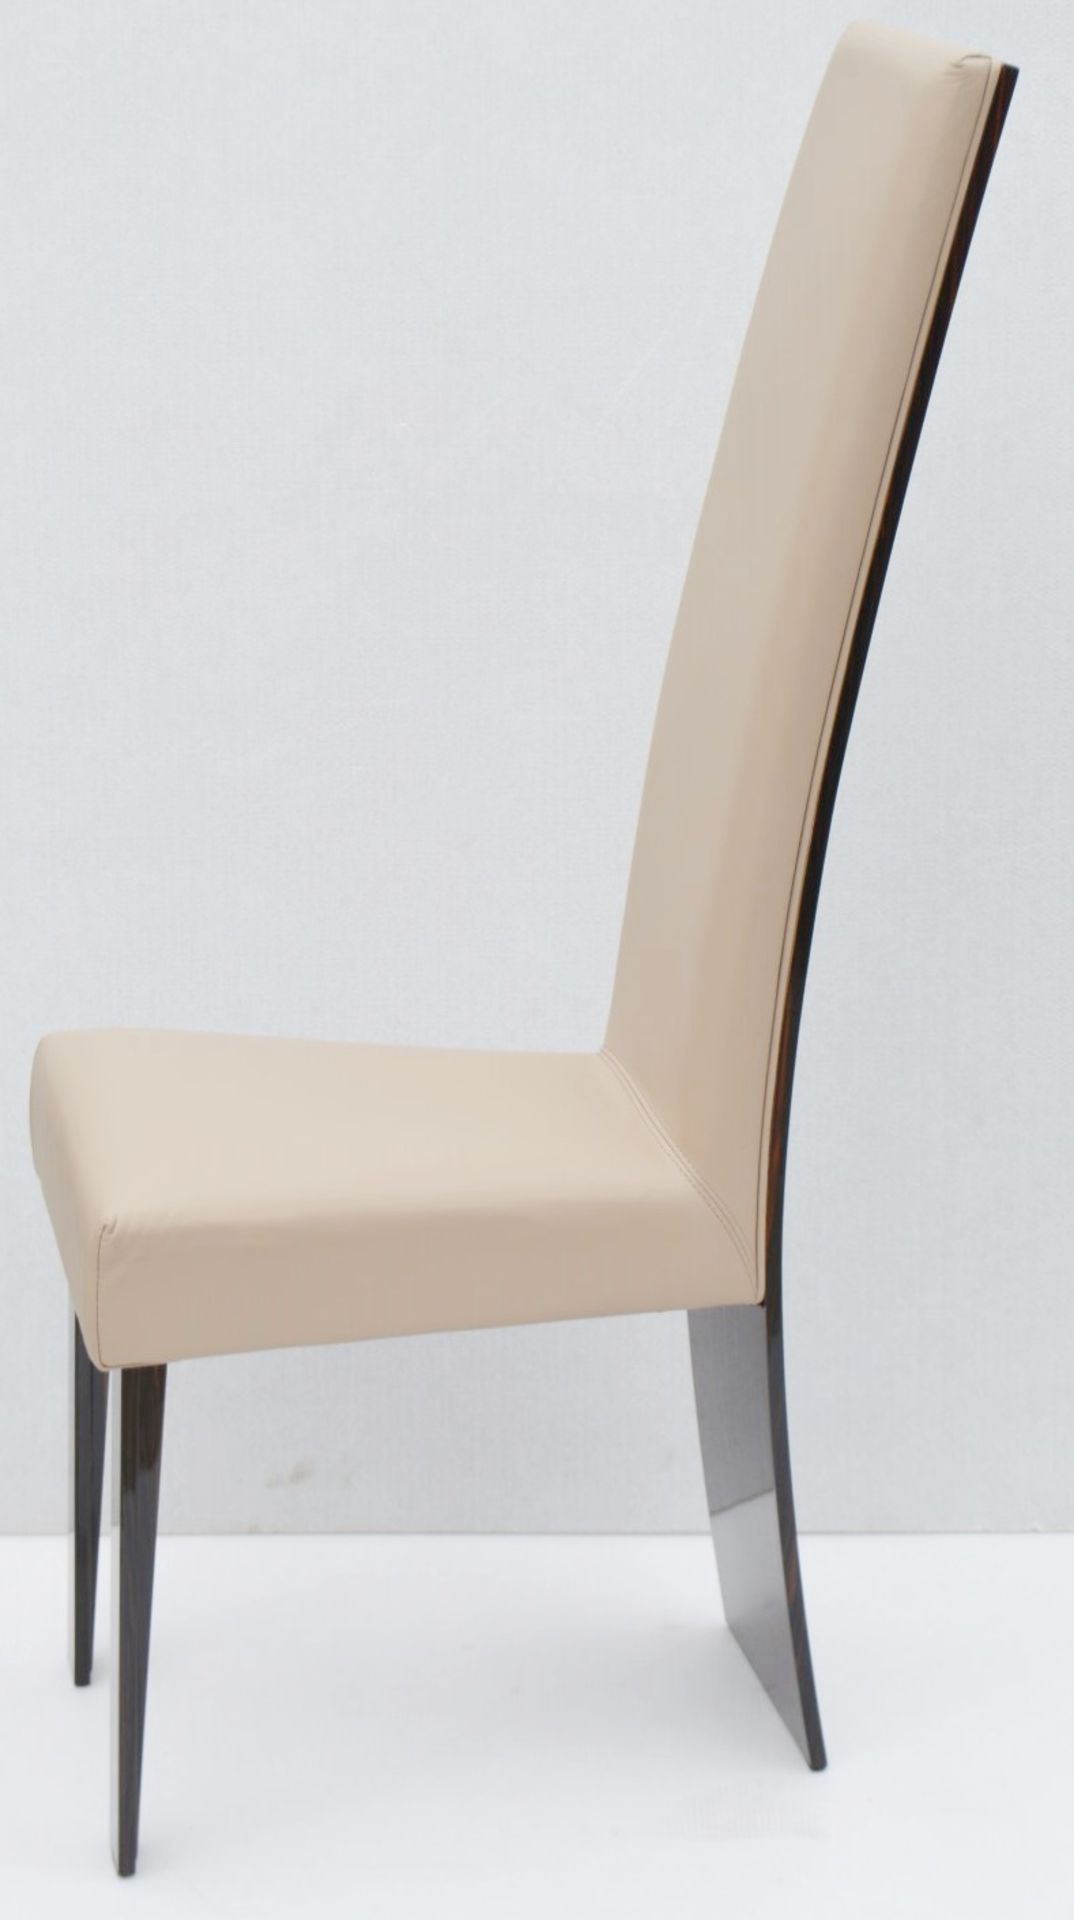 A Pair Of REFLEX 'New York-2' Designer Leather Upholstered High-back Chairs - Original RRP £2,578 - Image 8 of 8